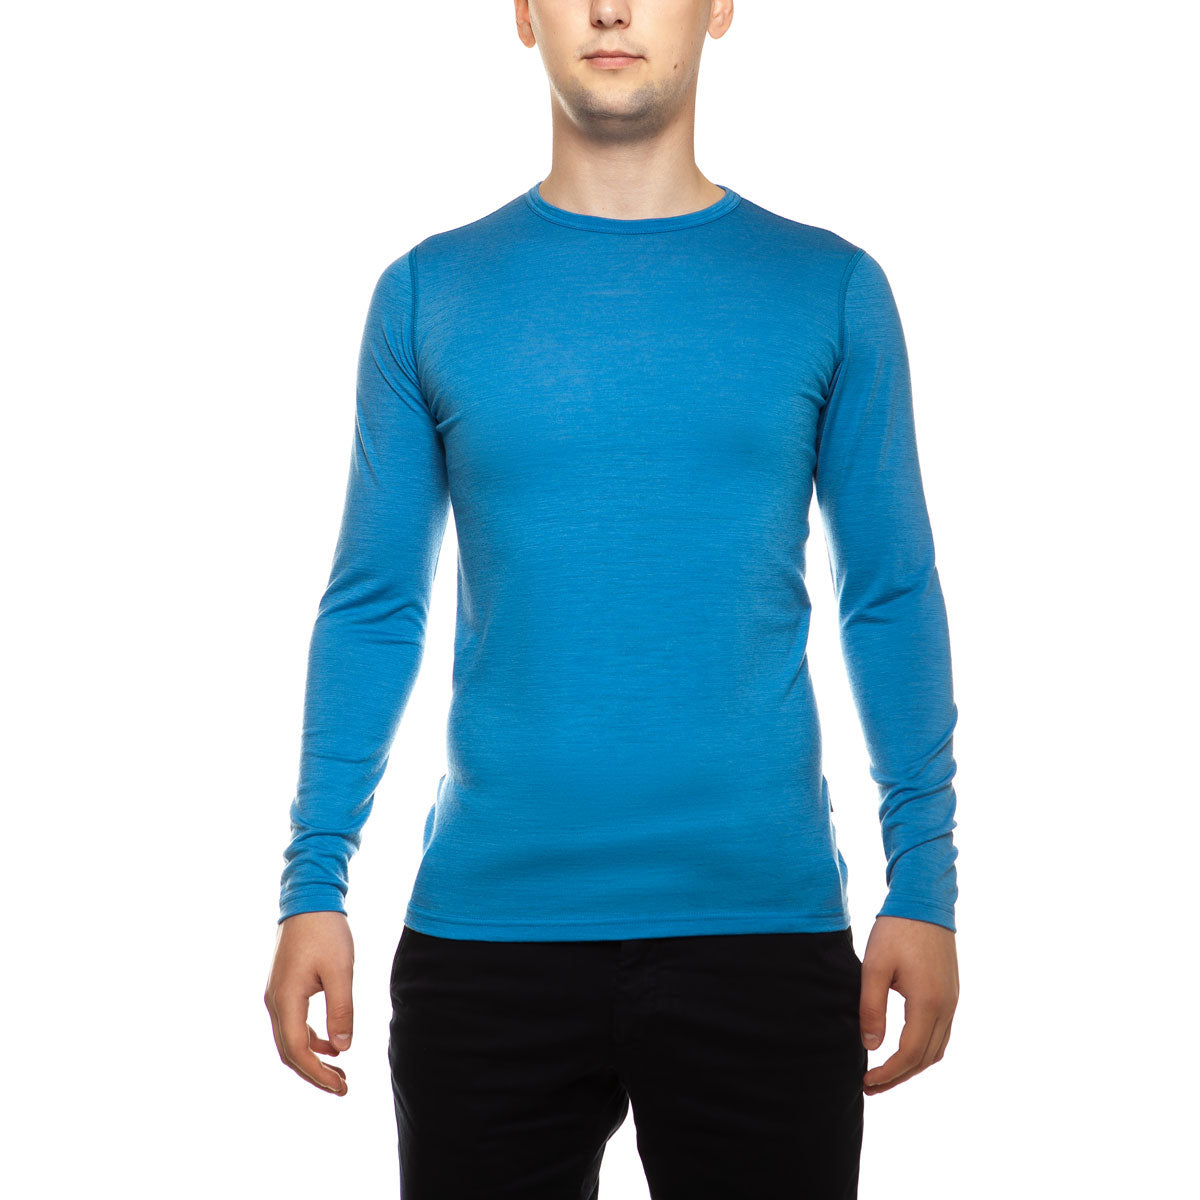 menique Men's Merino 160 Long Sleeve Crew Light Blue Color in nature